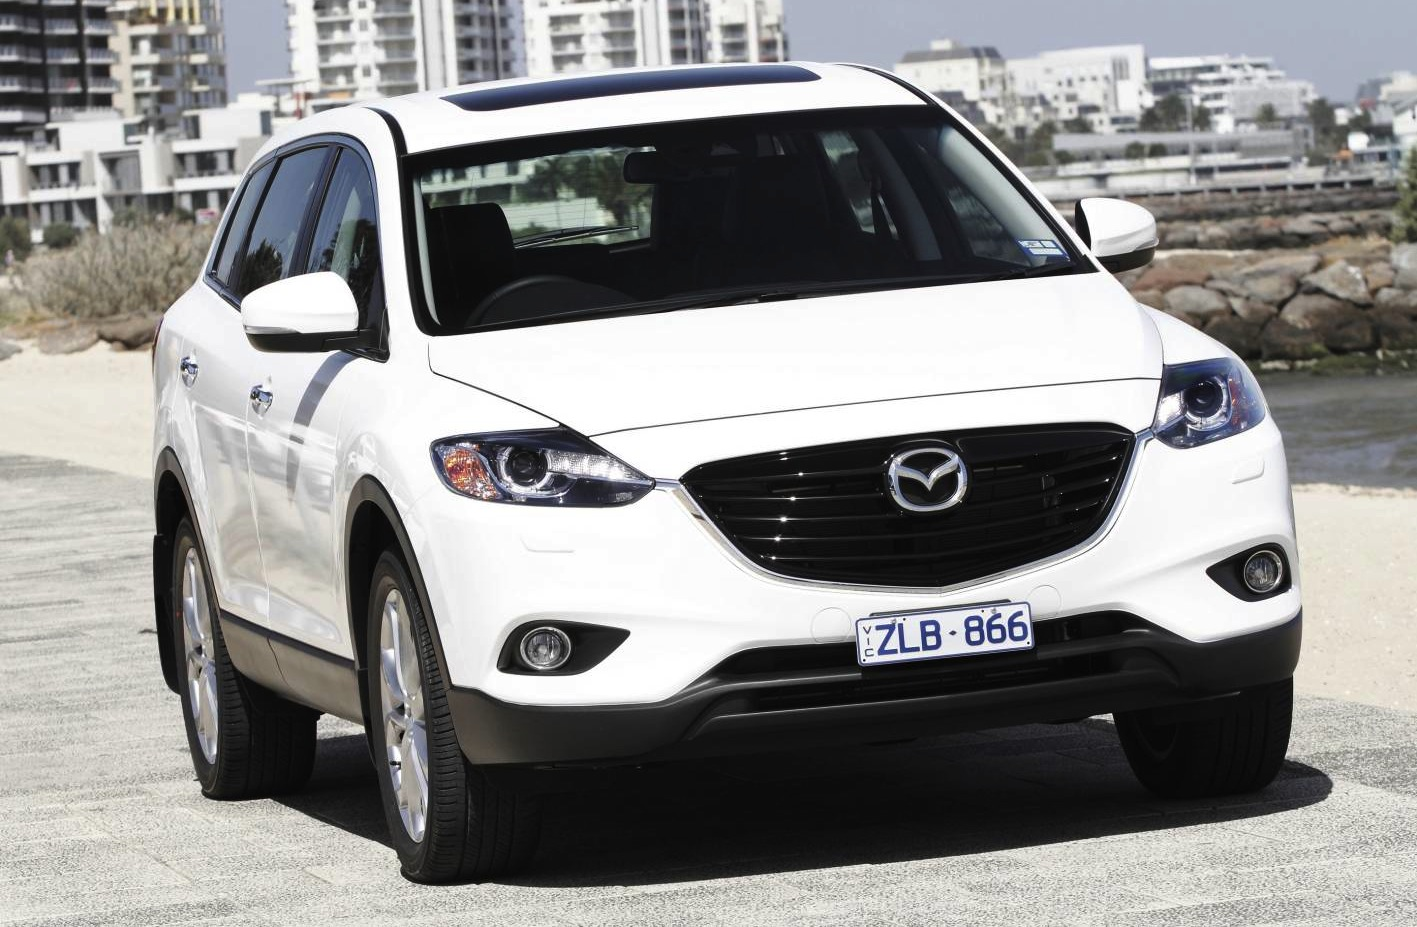 2013 Mazda Cx 9 Pricing And Specifications Photos 1 Of 12